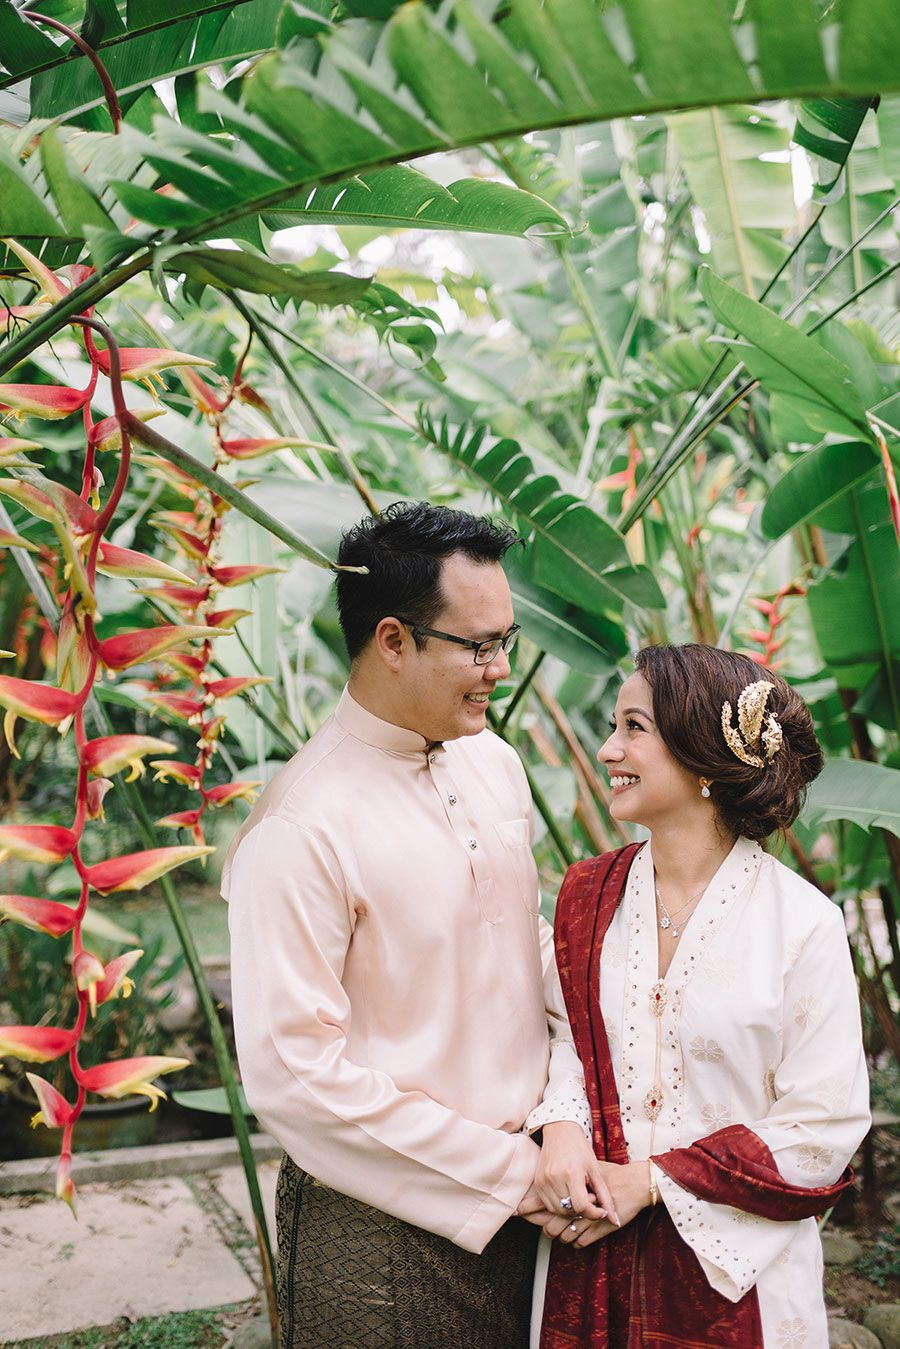 Isa And Sheins Garden Merisik Ceremony In 2018 Weddings Couples Kebaya Lestari Putih 1185r A Beautiful Traditional Malay Wedding